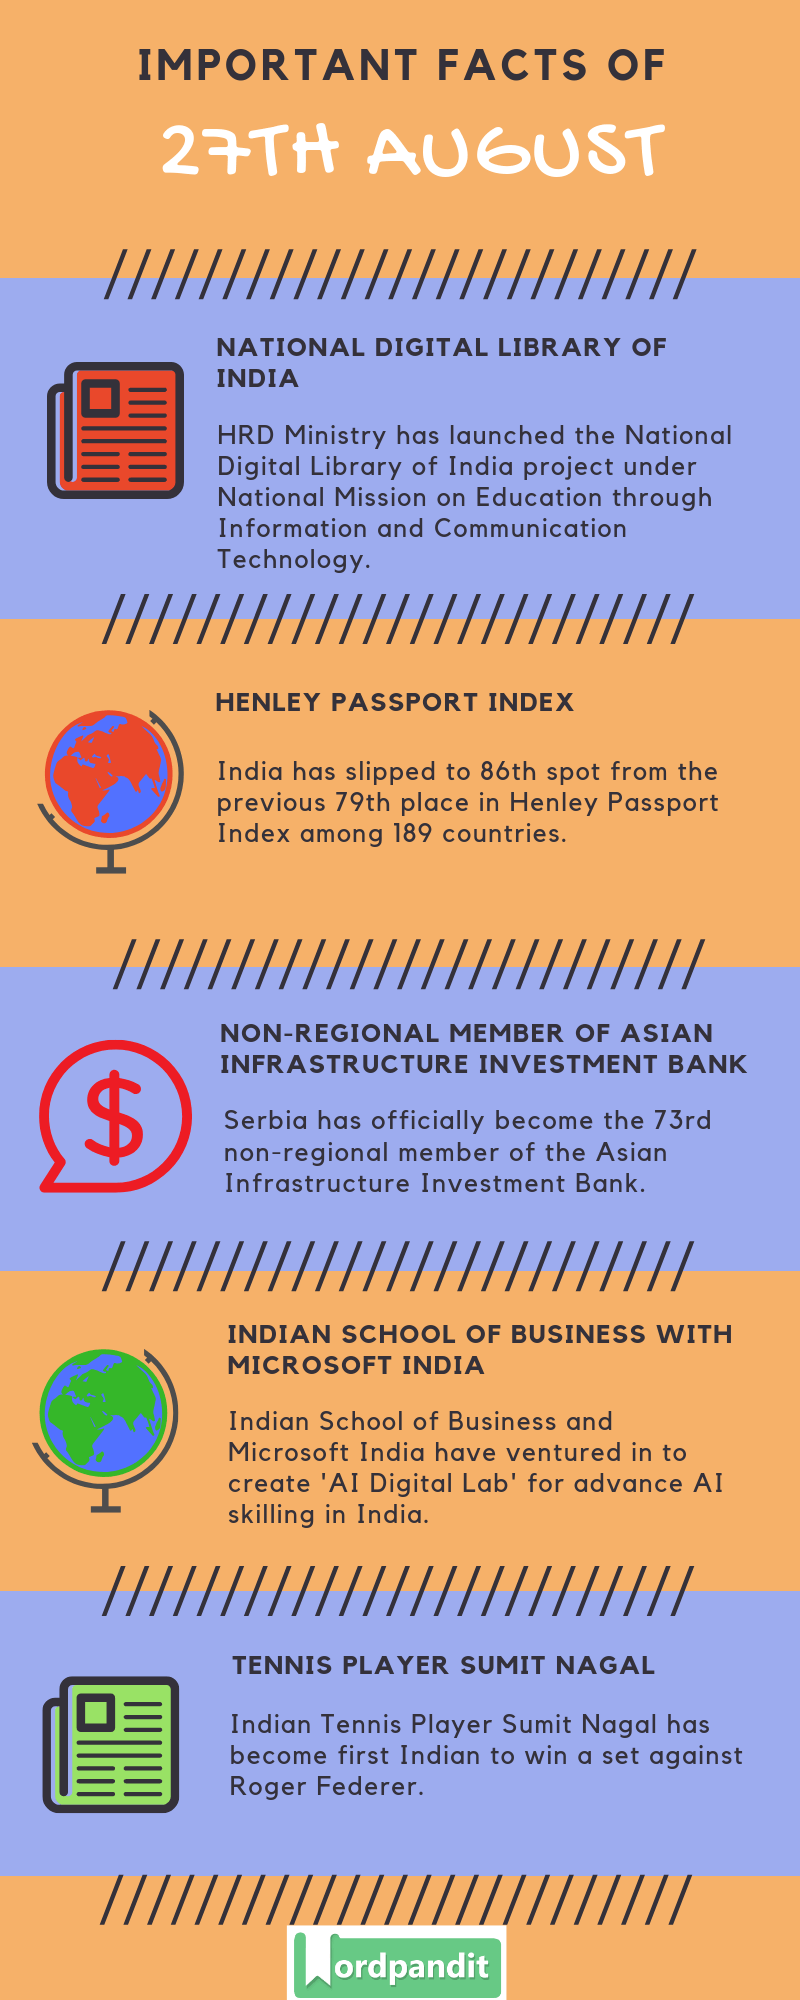 Daily Current Affairs 27 August 2019 Current Affairs Quiz 27 August 2019 Current Affairs Infographic